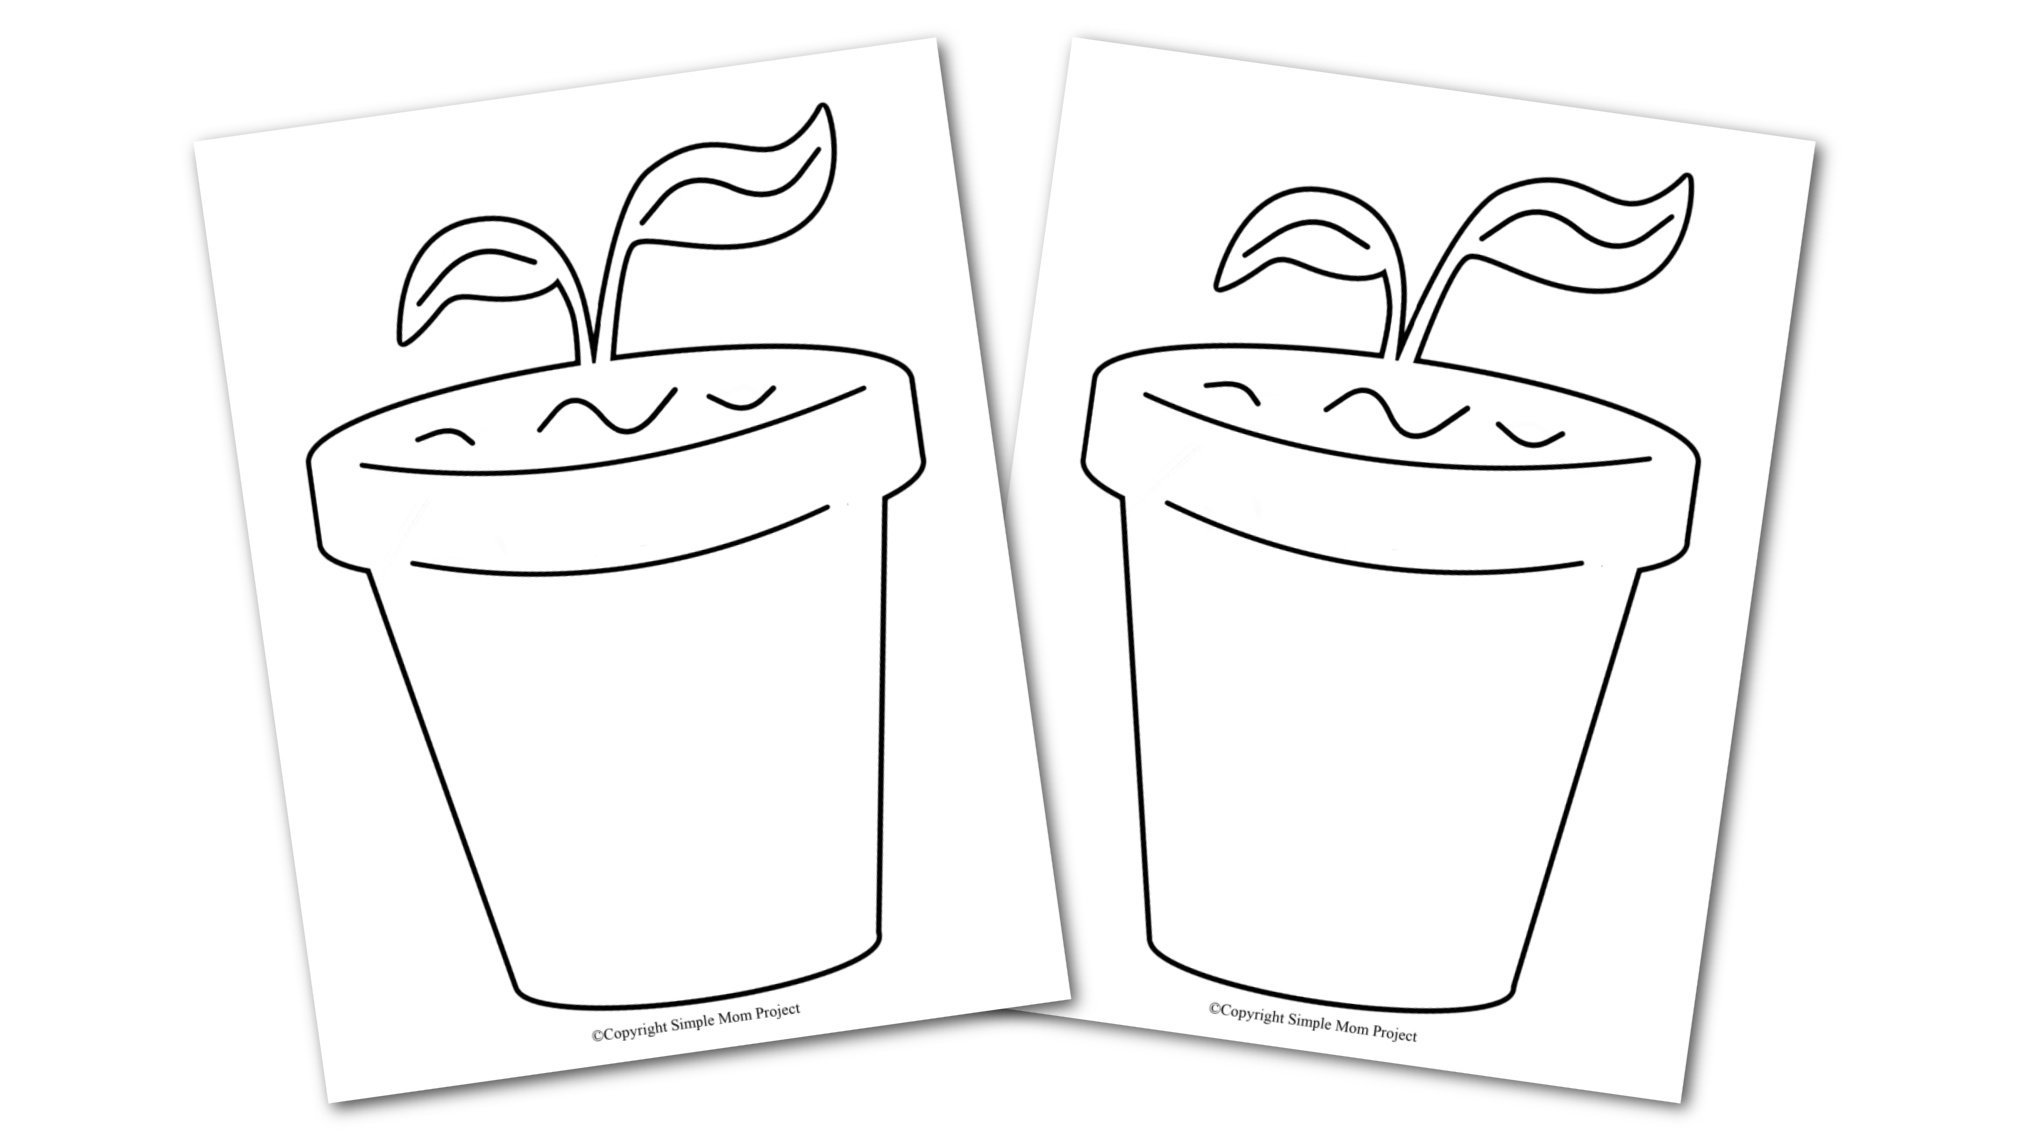 Free Printable Spring and Summer Flower Pot template silhouette for kids preschoolers and toddlers